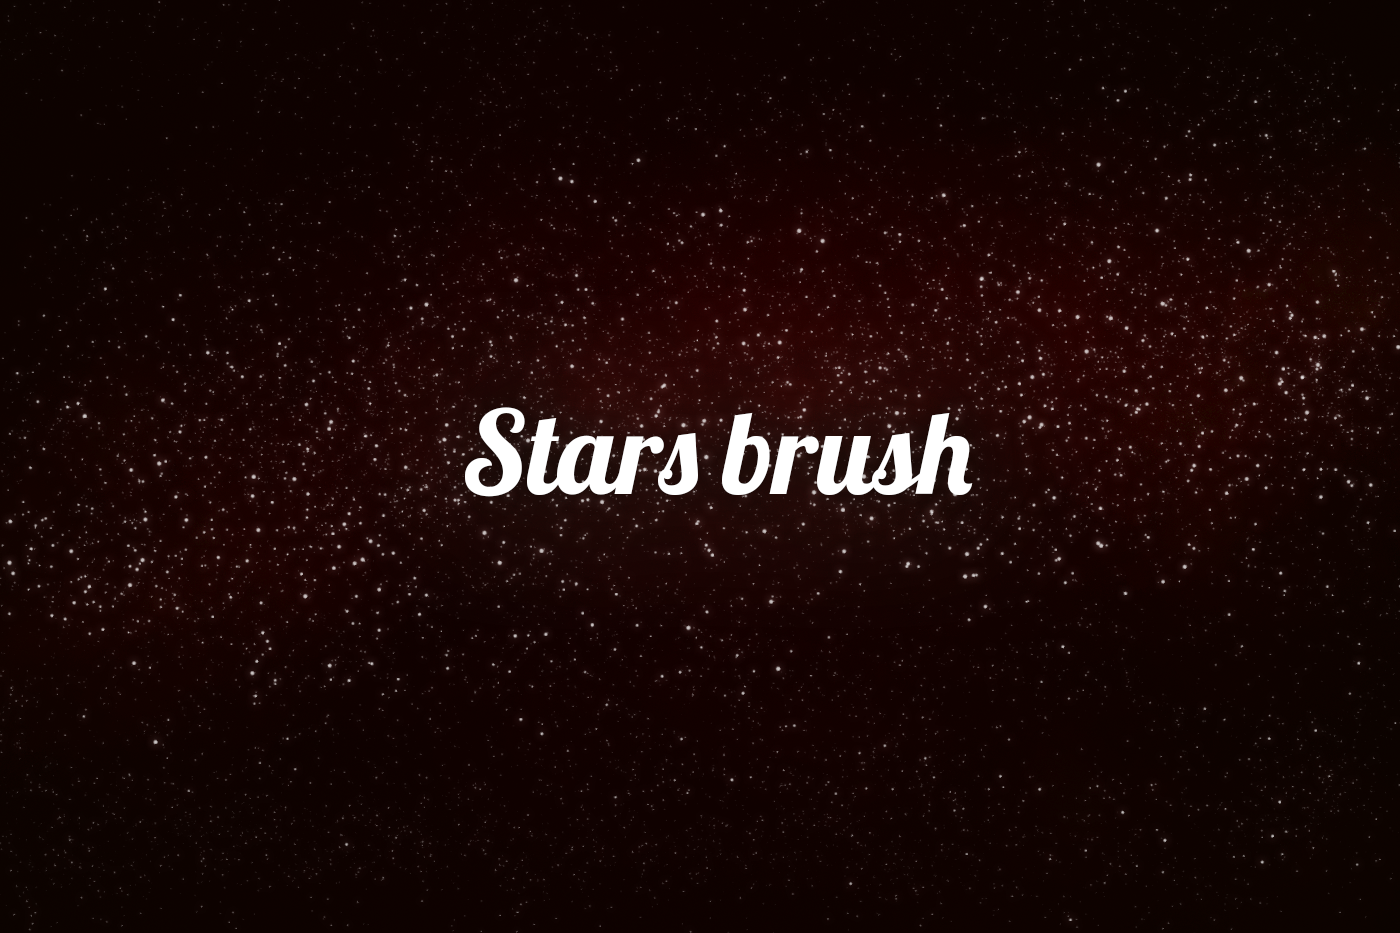 Stars Brush by pavoldvorsky